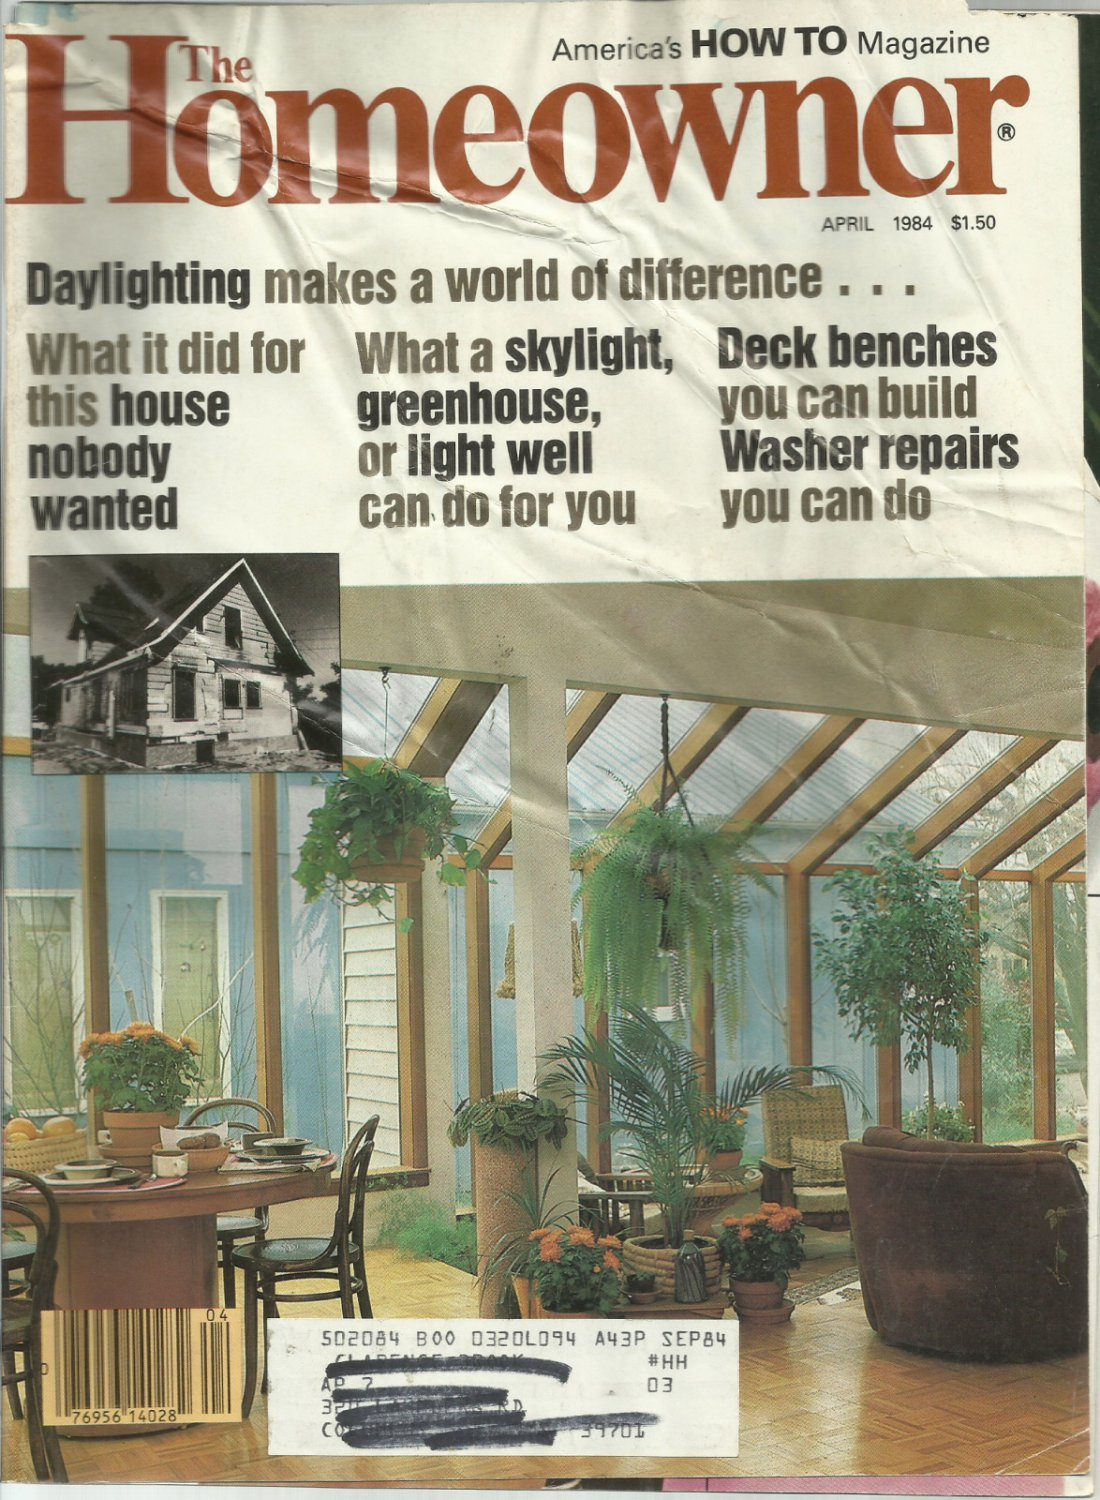 American's How To magazine The Homeowner-  April 1984- Deck benches you can build